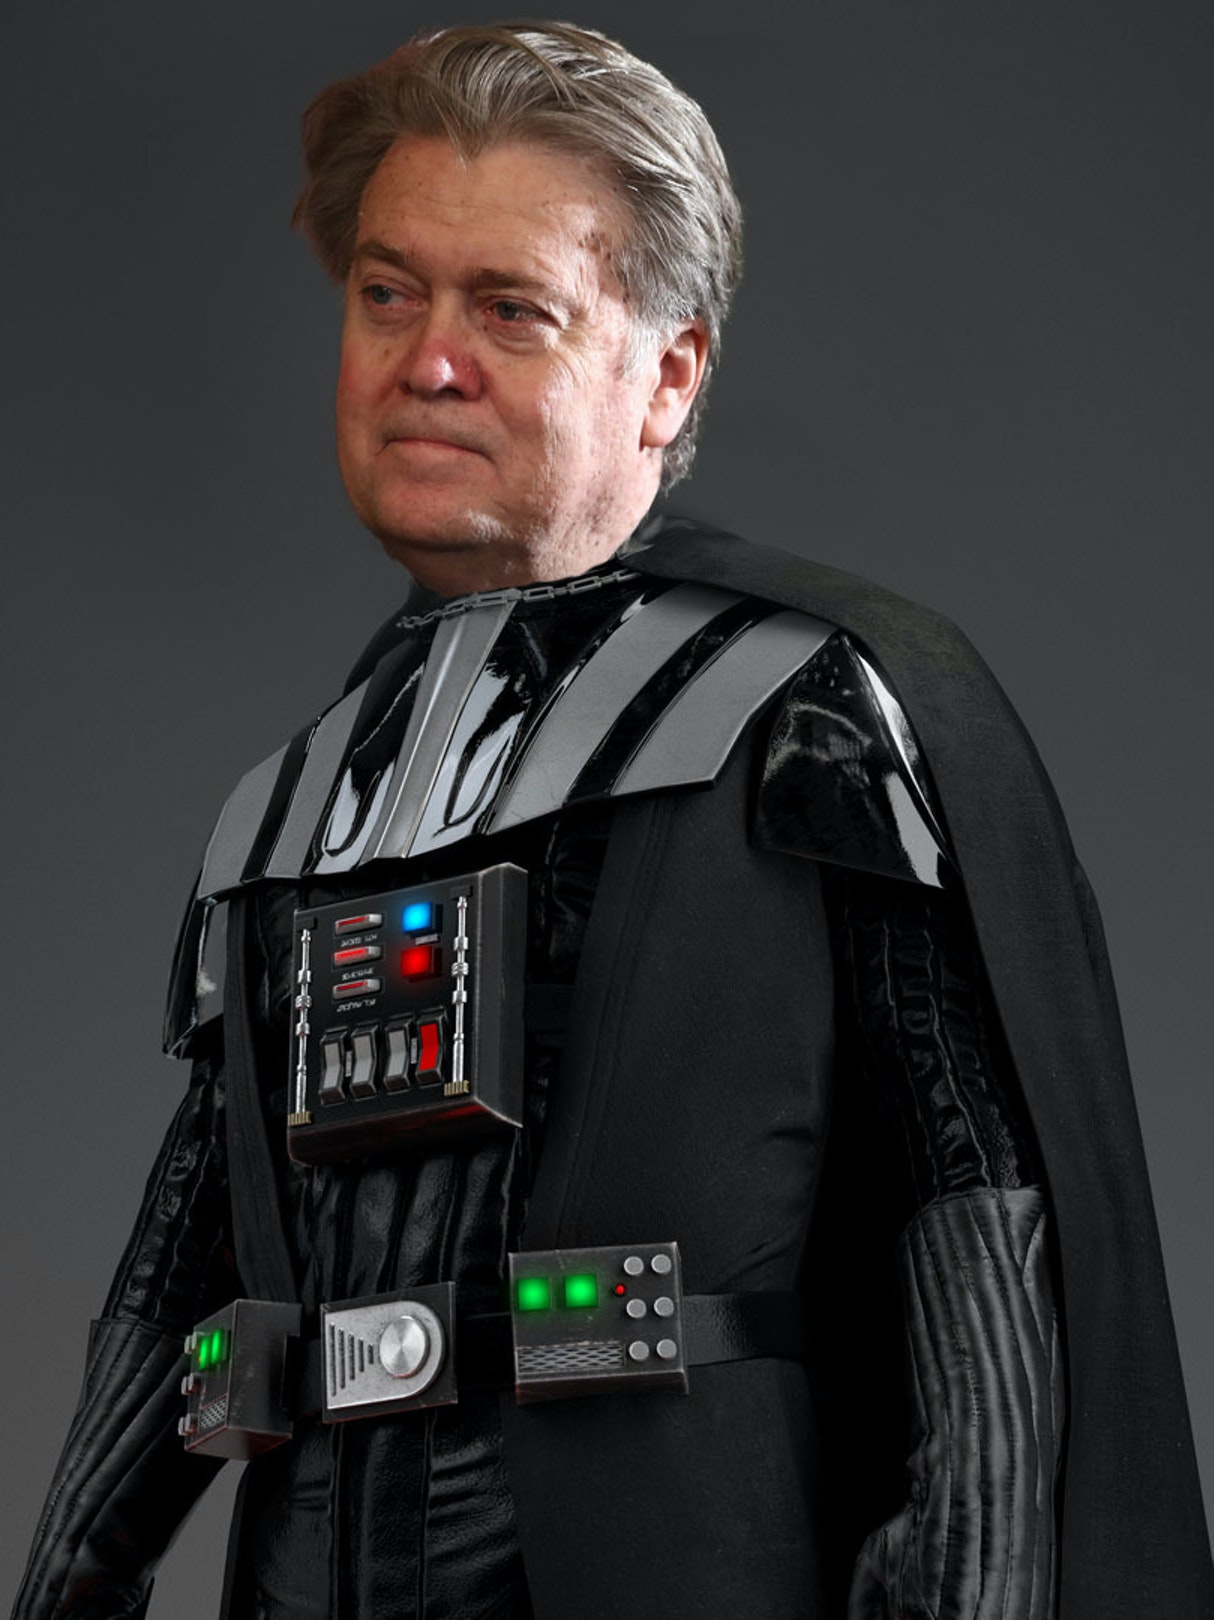 Steve Bannon compared himself to Darth Vader again.